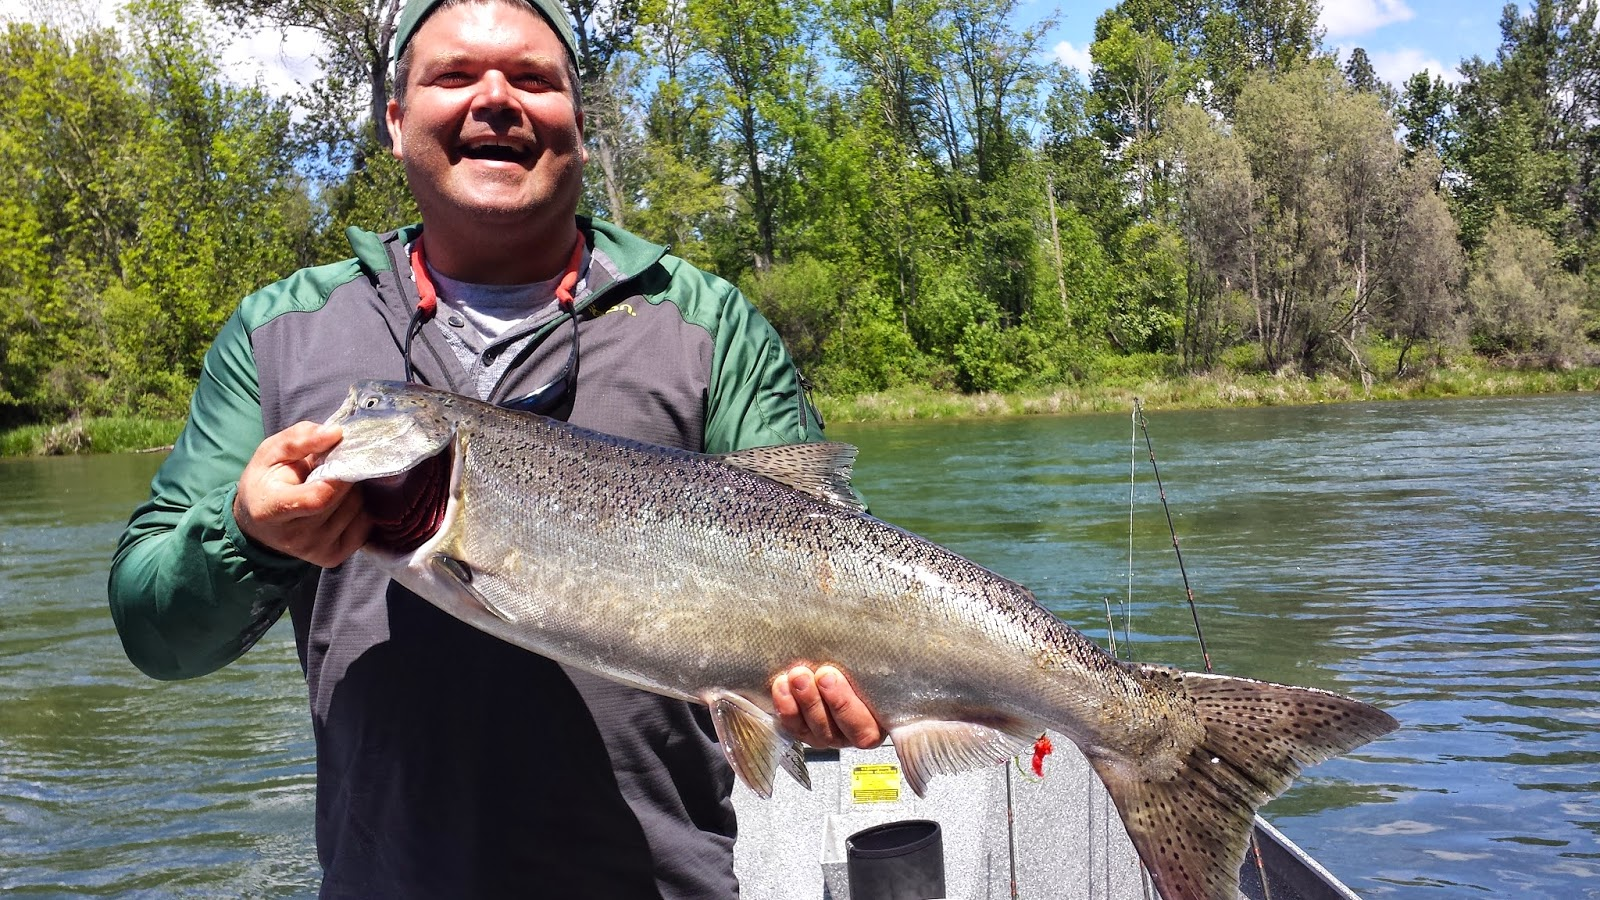 Guided Fishing on the Rogue and Umpqua Rivers' for Salmon